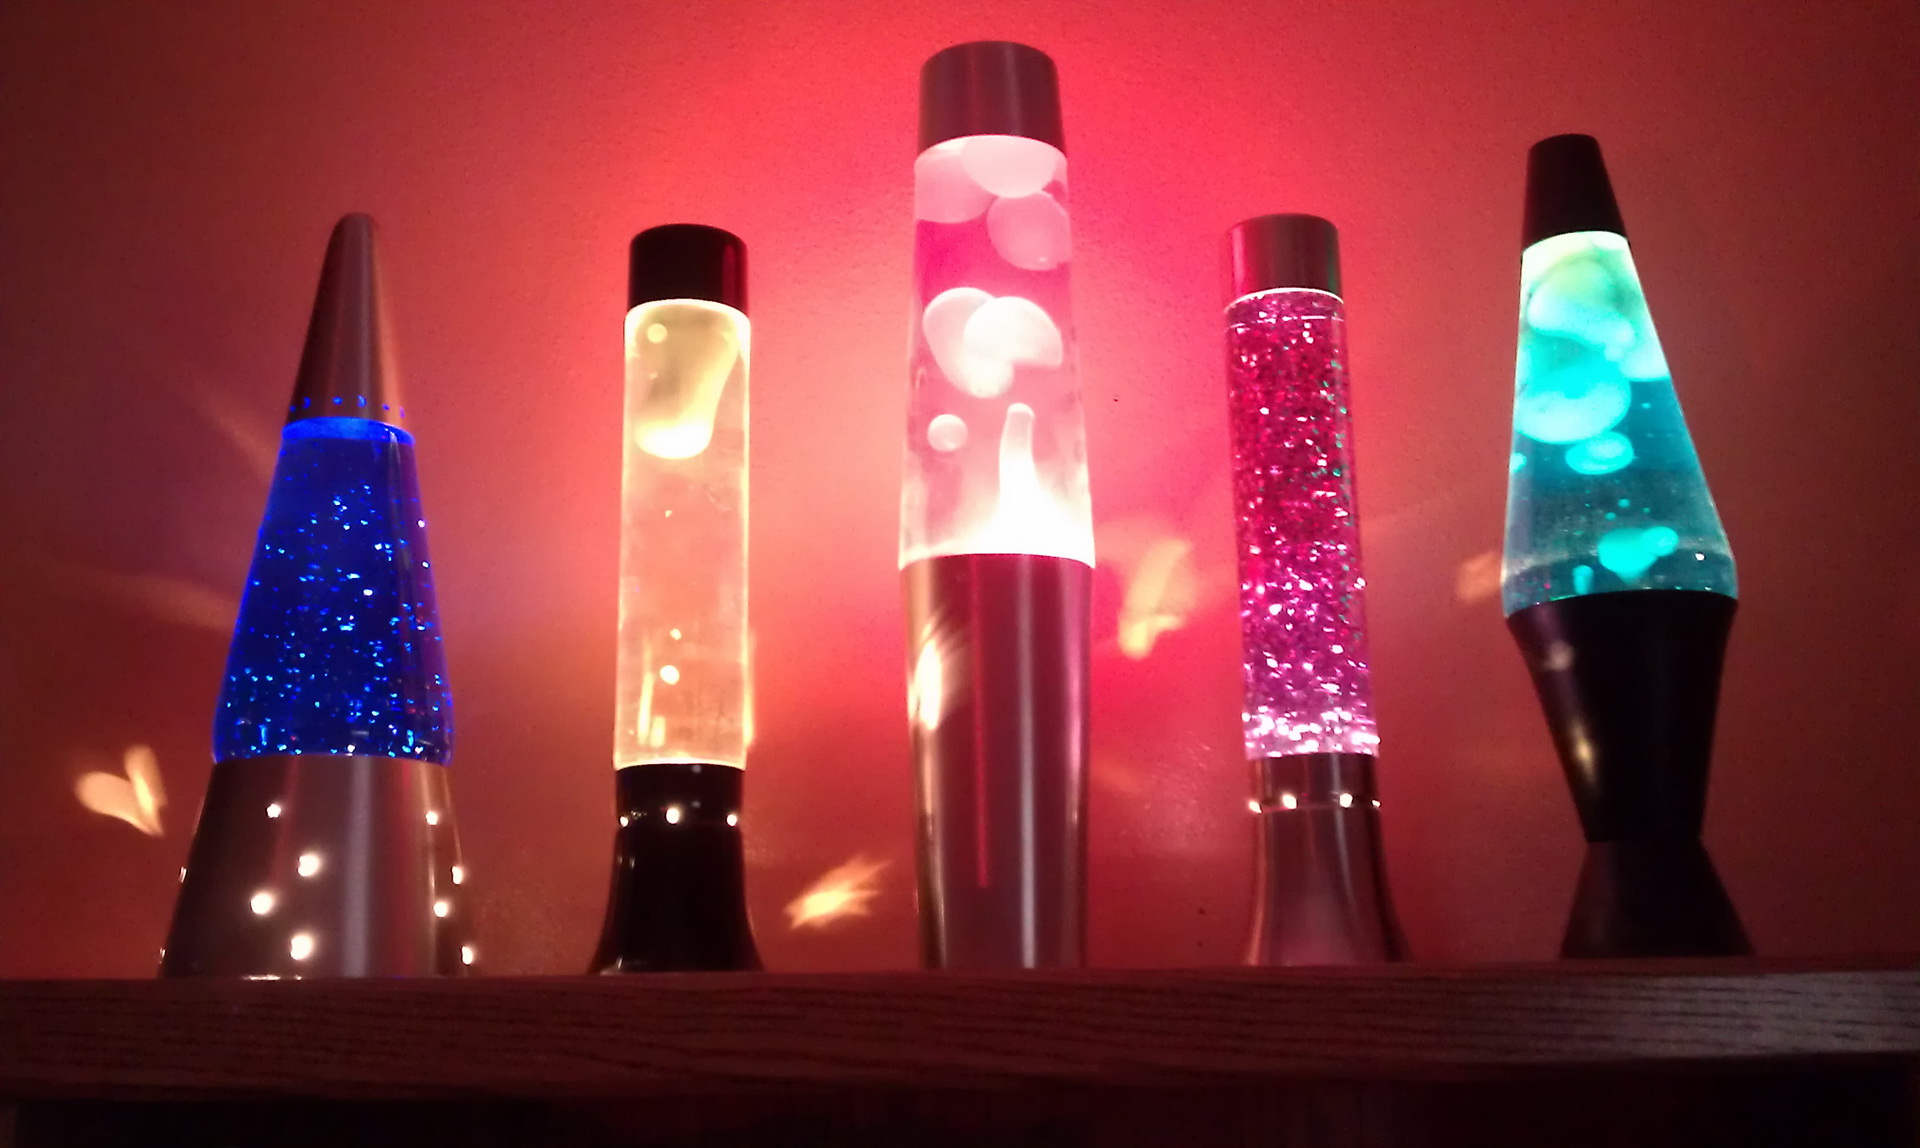 Cool Lava Lamps 25 Ways To Make Your Room Brighter Shiner And